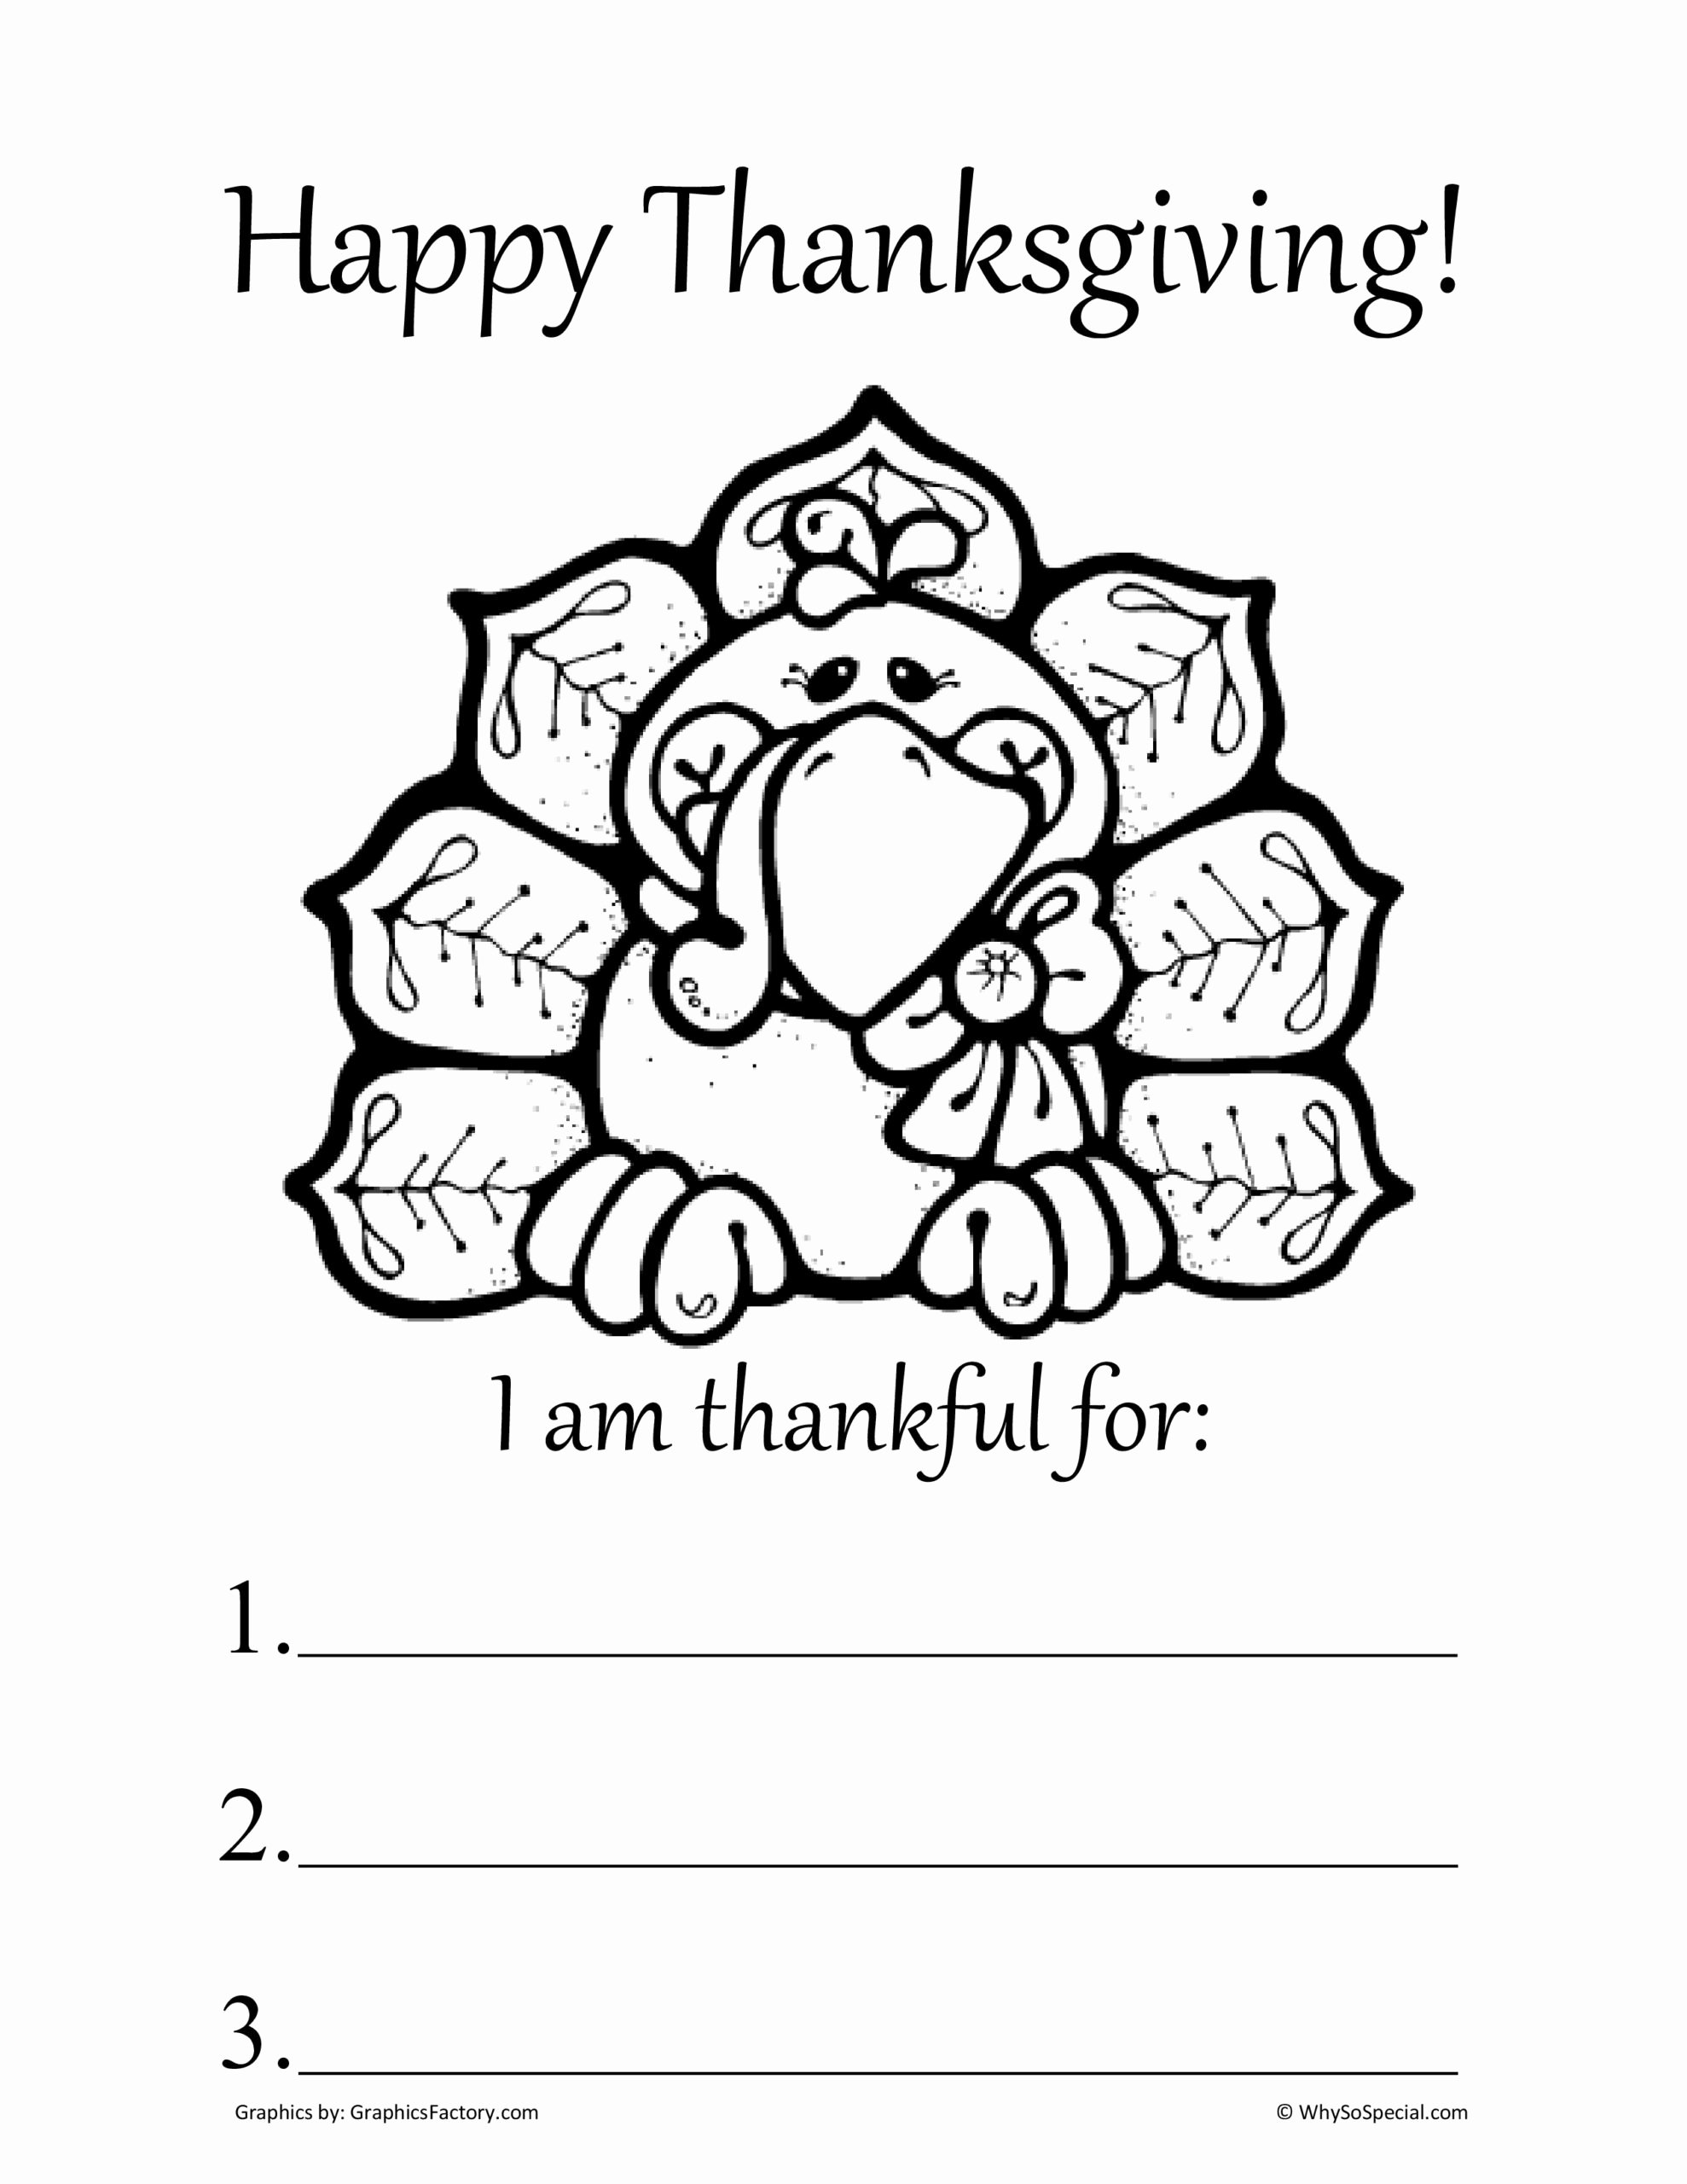 Thanksgiving Worksheets for Preschoolers Ideas Worksheets Image Result for Thanksgiving Worksheets First